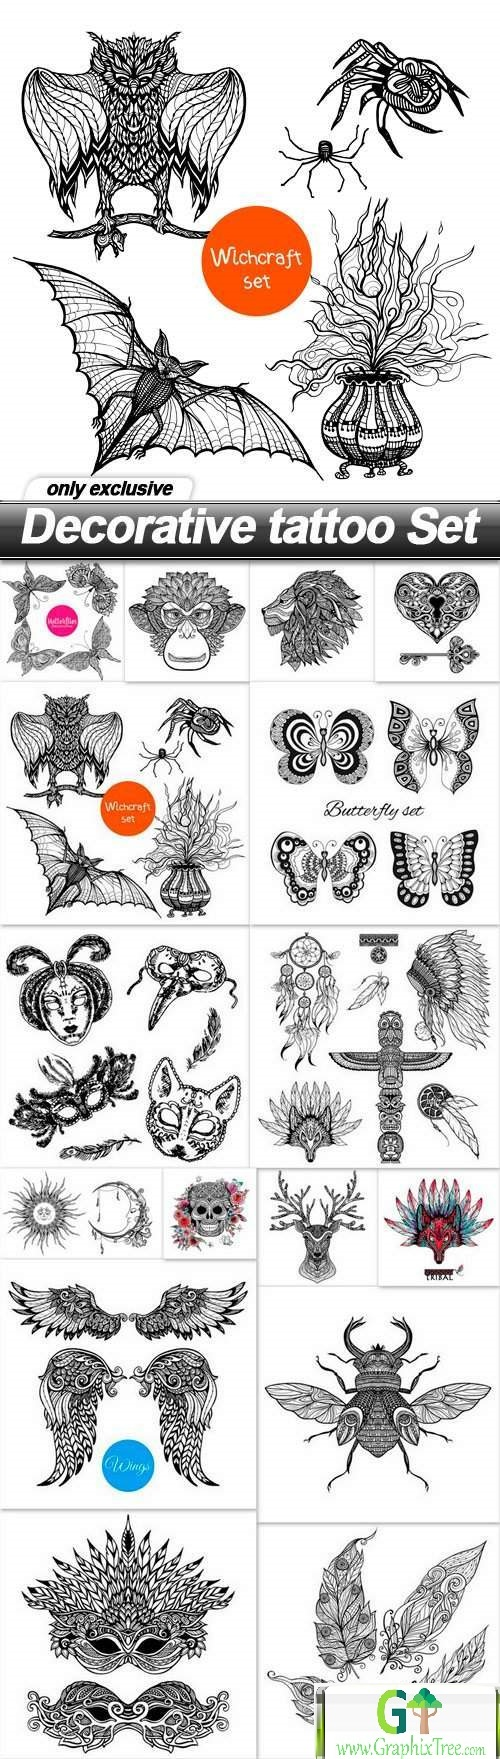 Decorative tattoo Set - 16 EPS